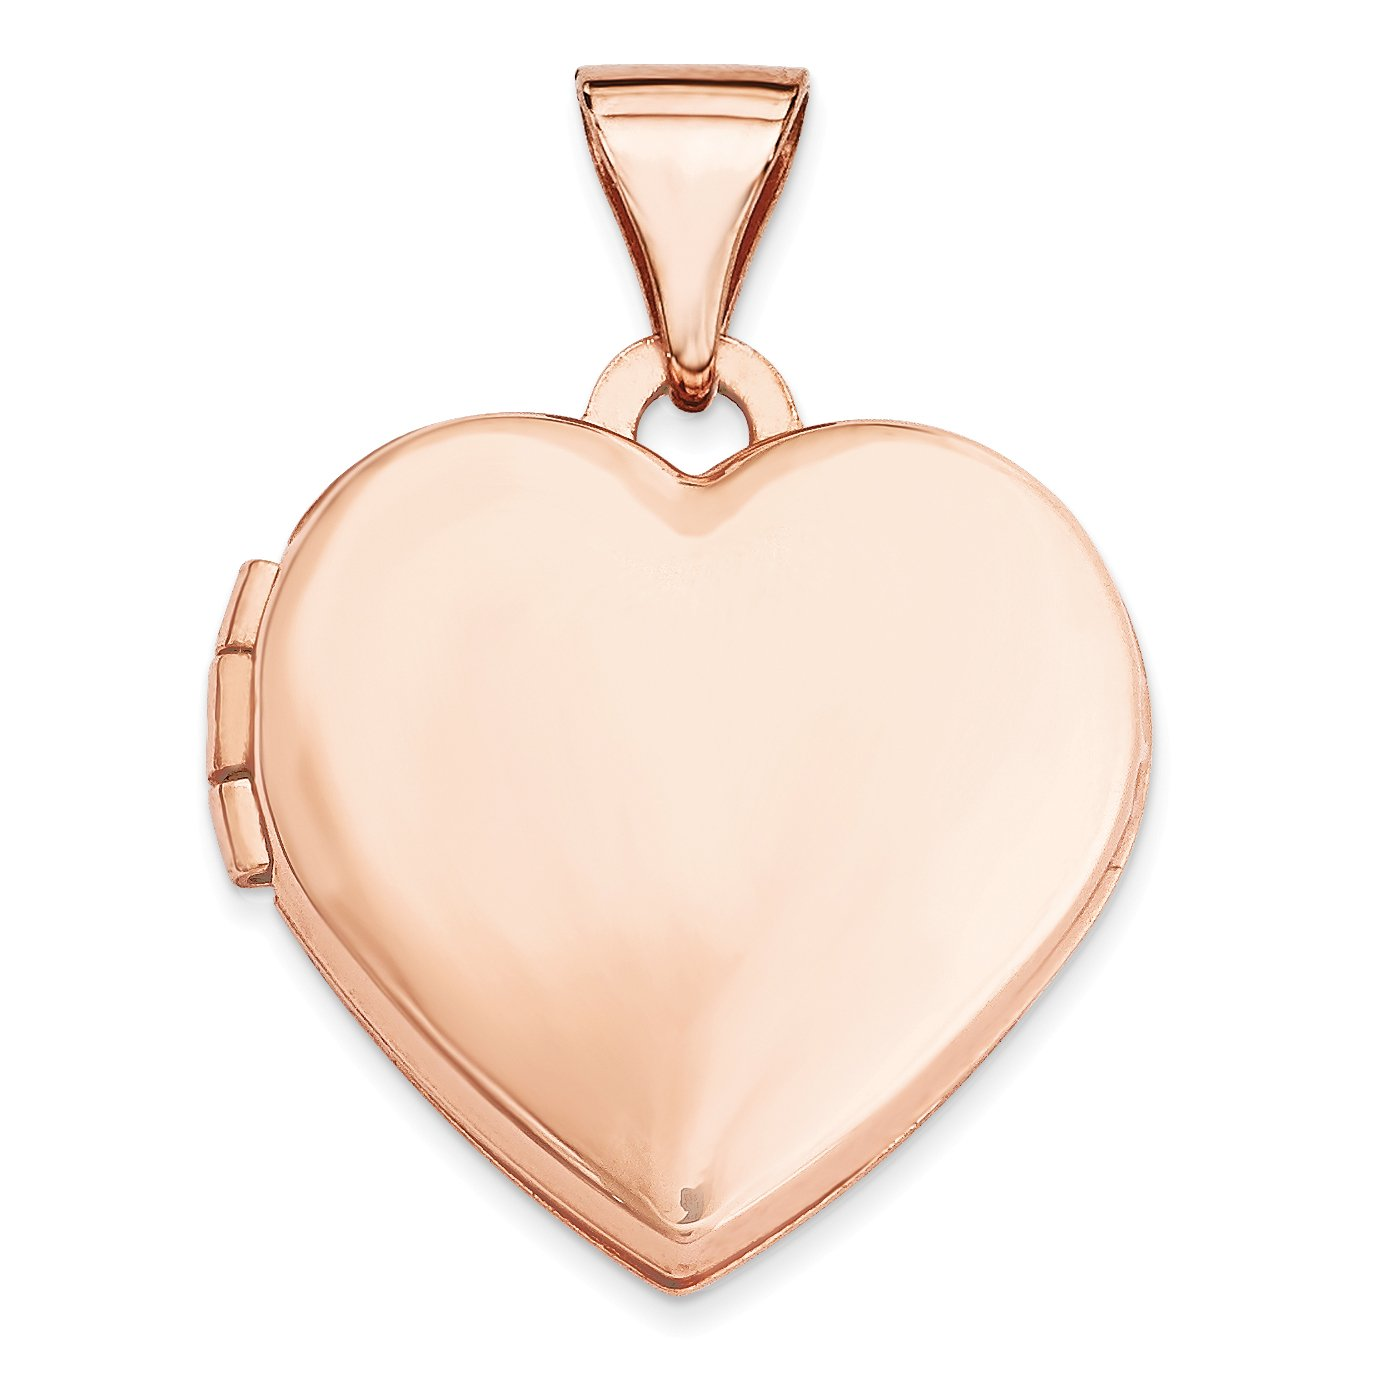 ICE CARATS 14k Rose Gold 15mm Plain Heart Photo Pendant Charm Locket Chain Necklace That Holds Pictures Fine Jewelry Gift Set For Women Heart